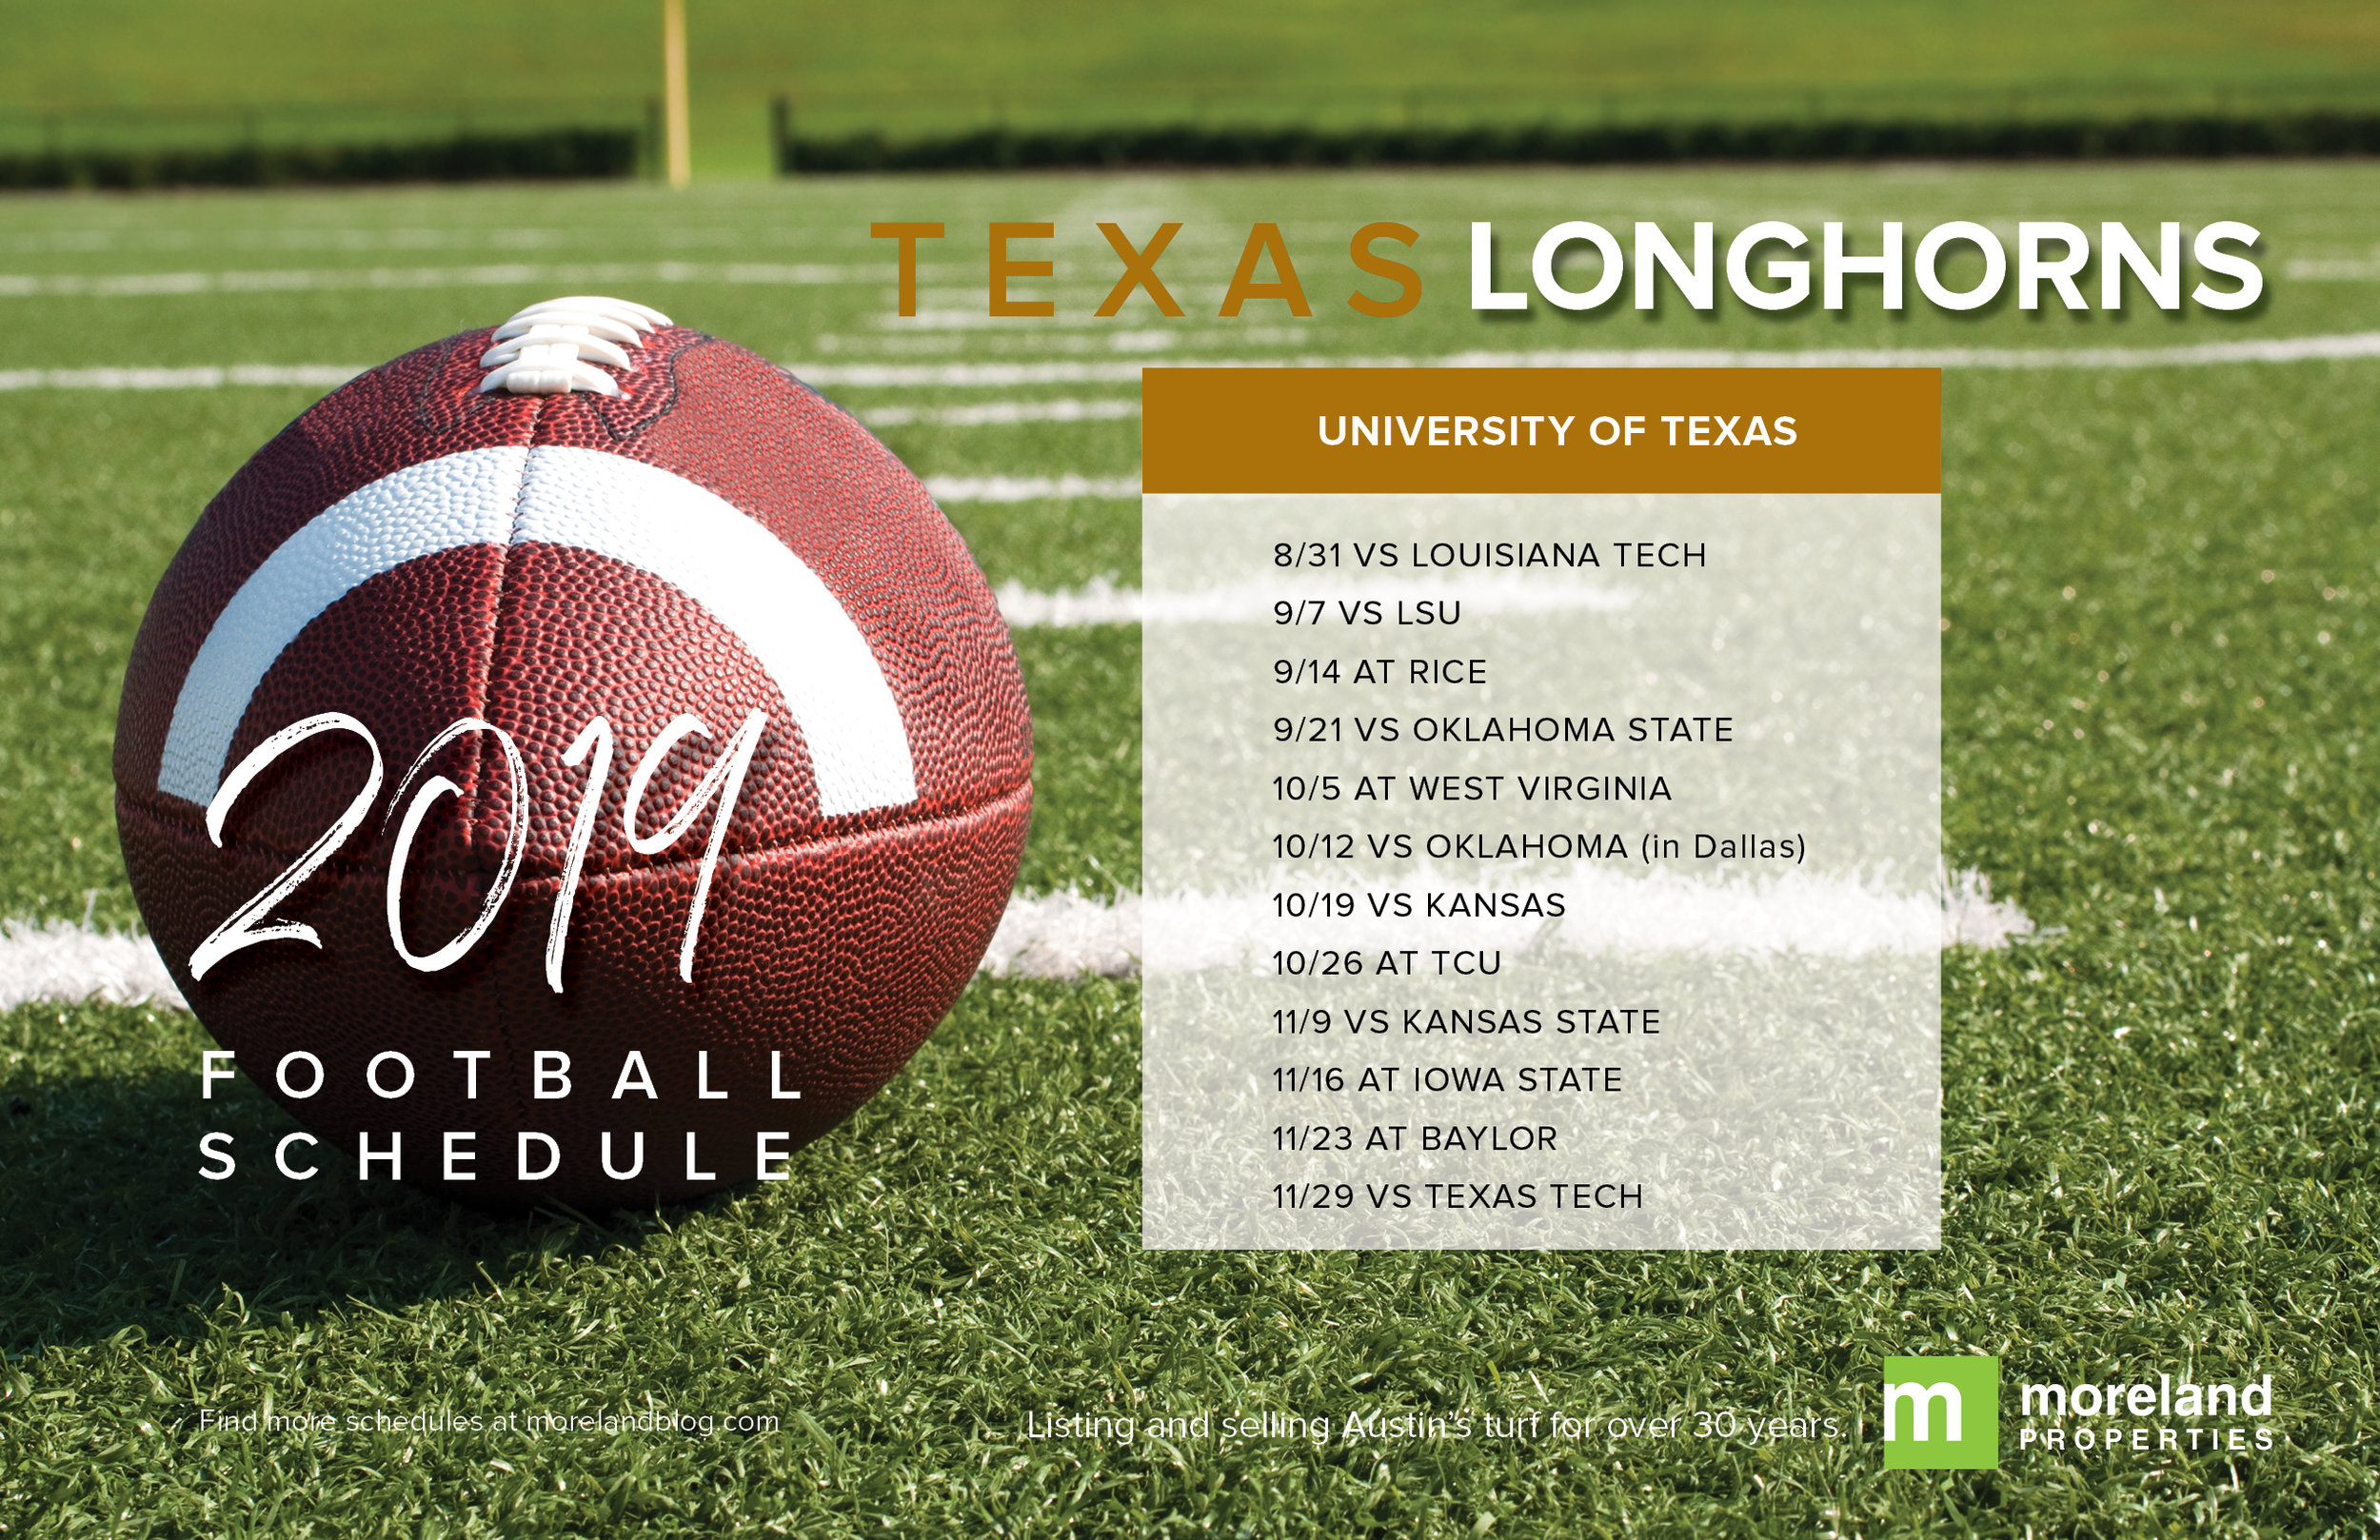 University of Texas Longhorn Football Schedule 2019